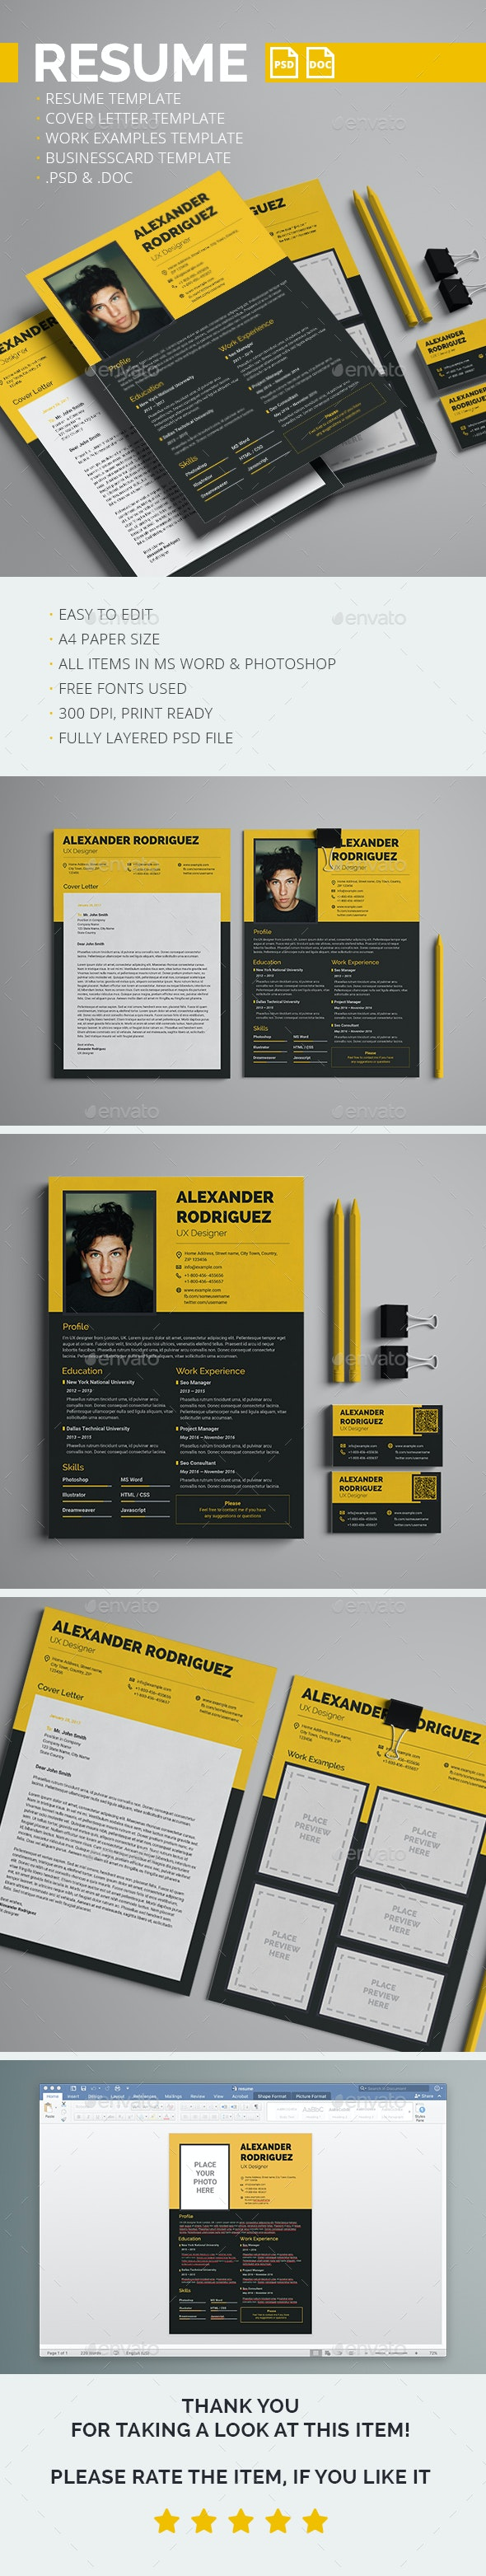 Resume, Cover letter, Work examples & Business card templates - Resumes Stationery